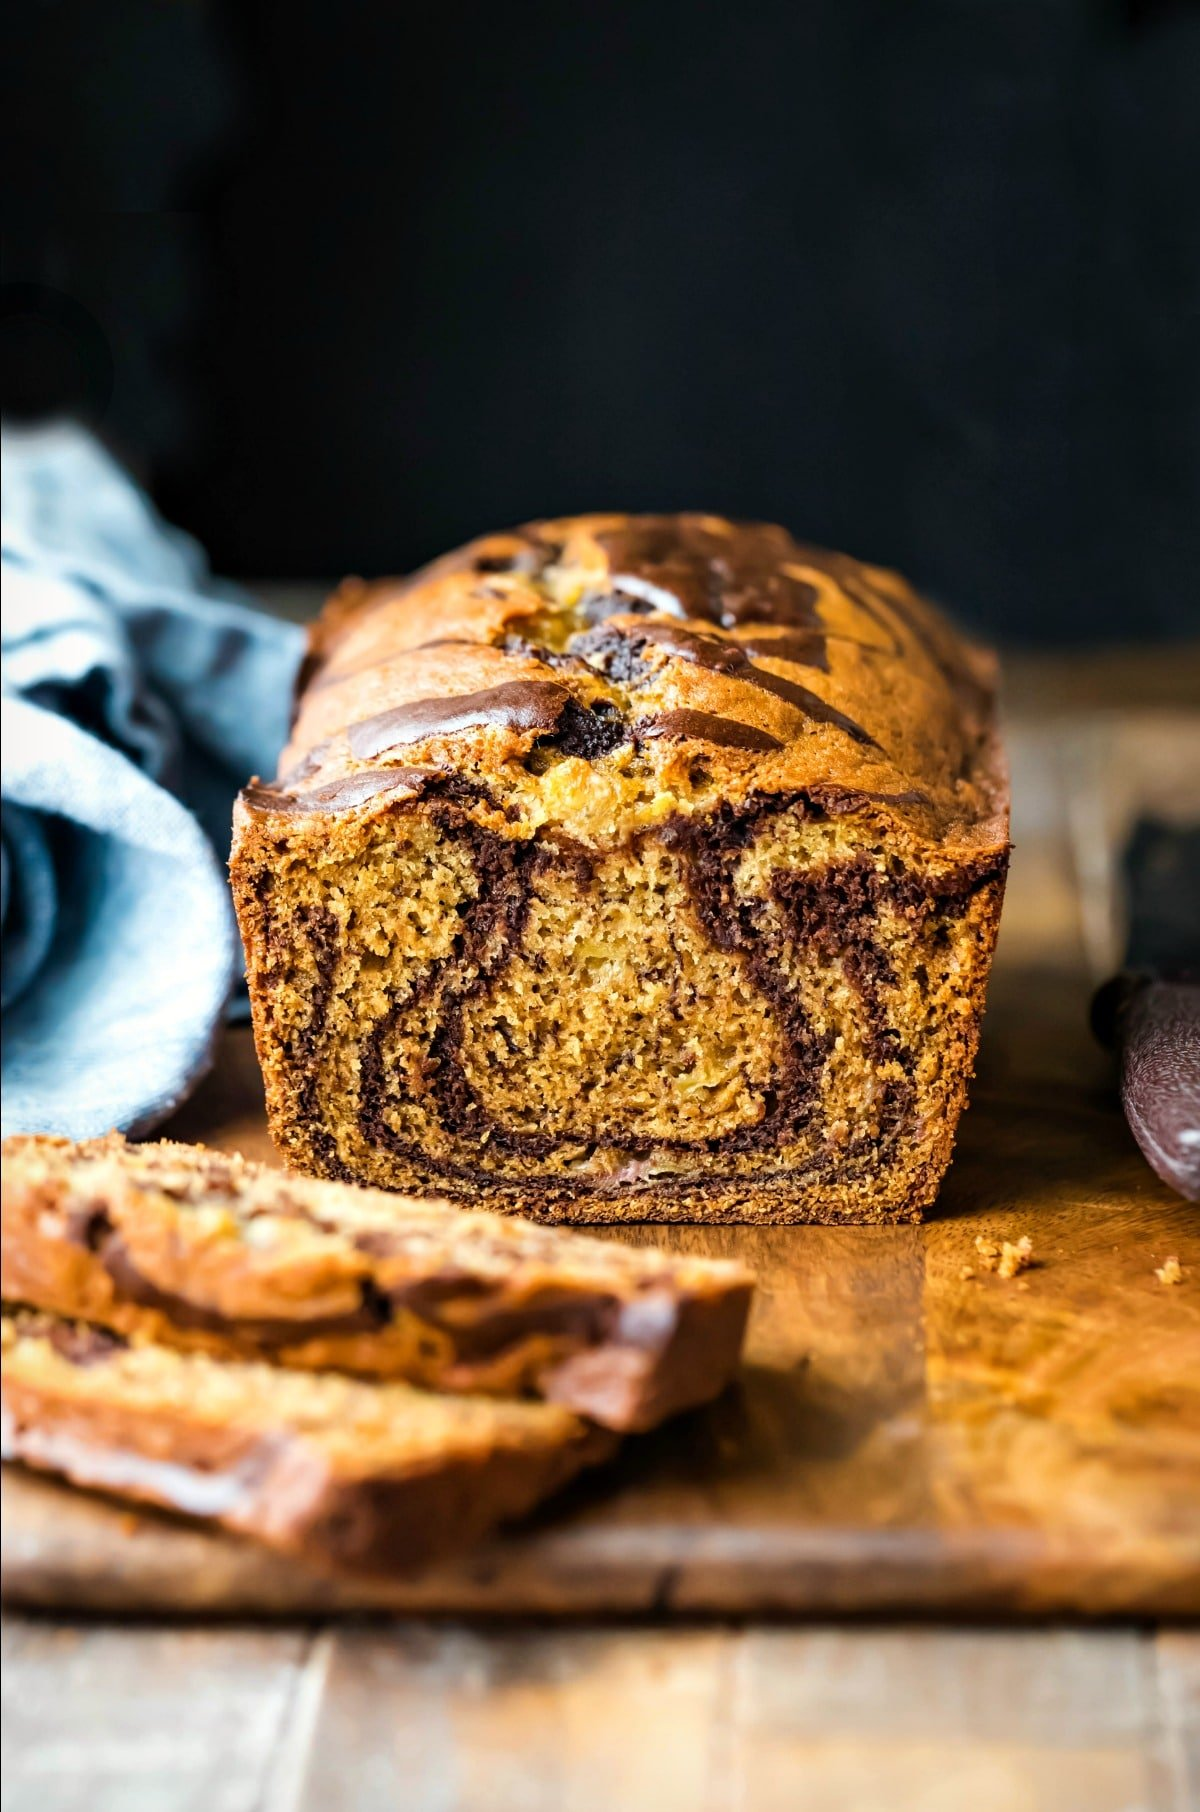 Loaf of marbled banana bread next to a blue linen napkin